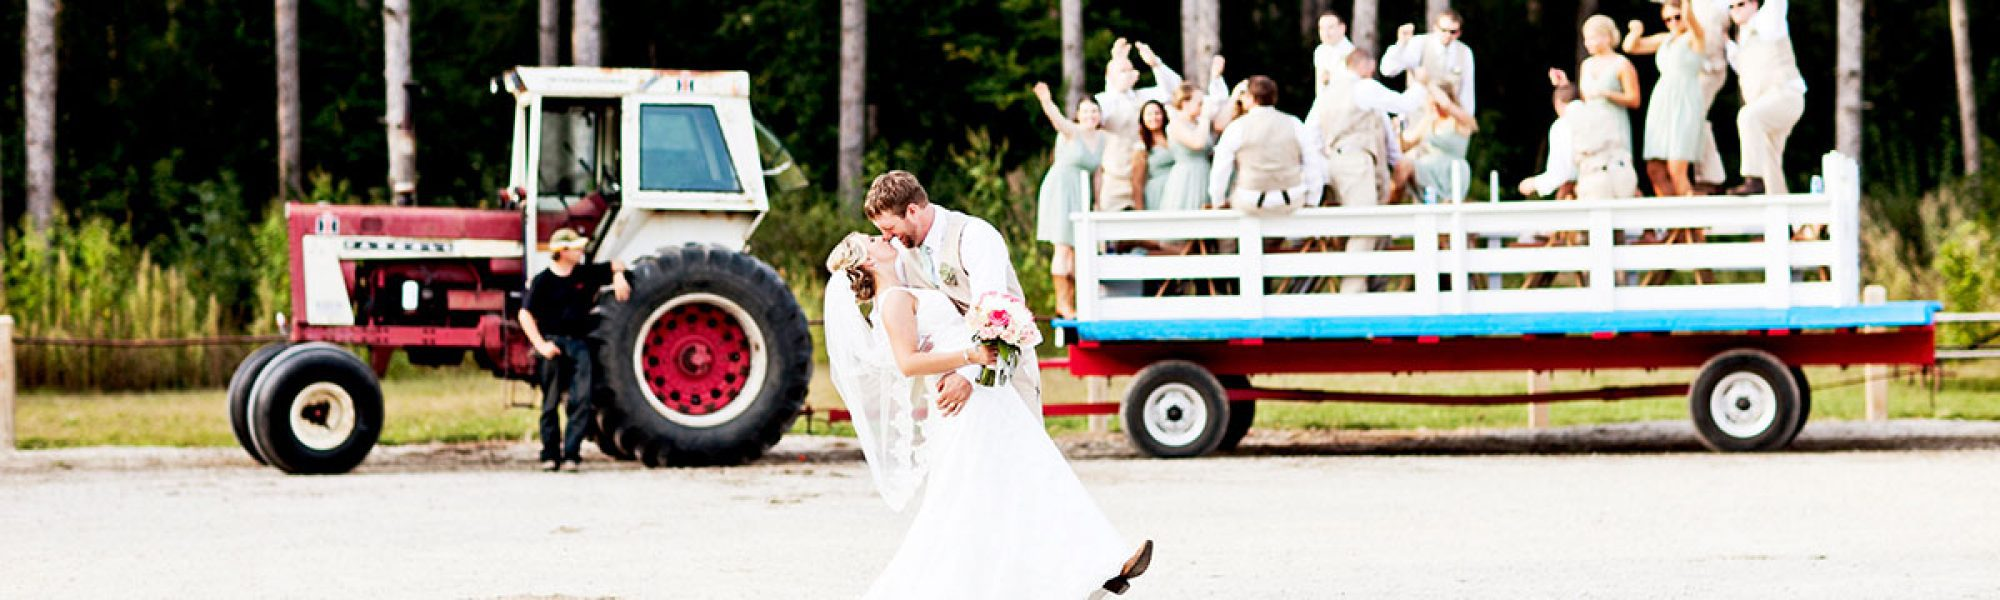 Wedding Day Transportation